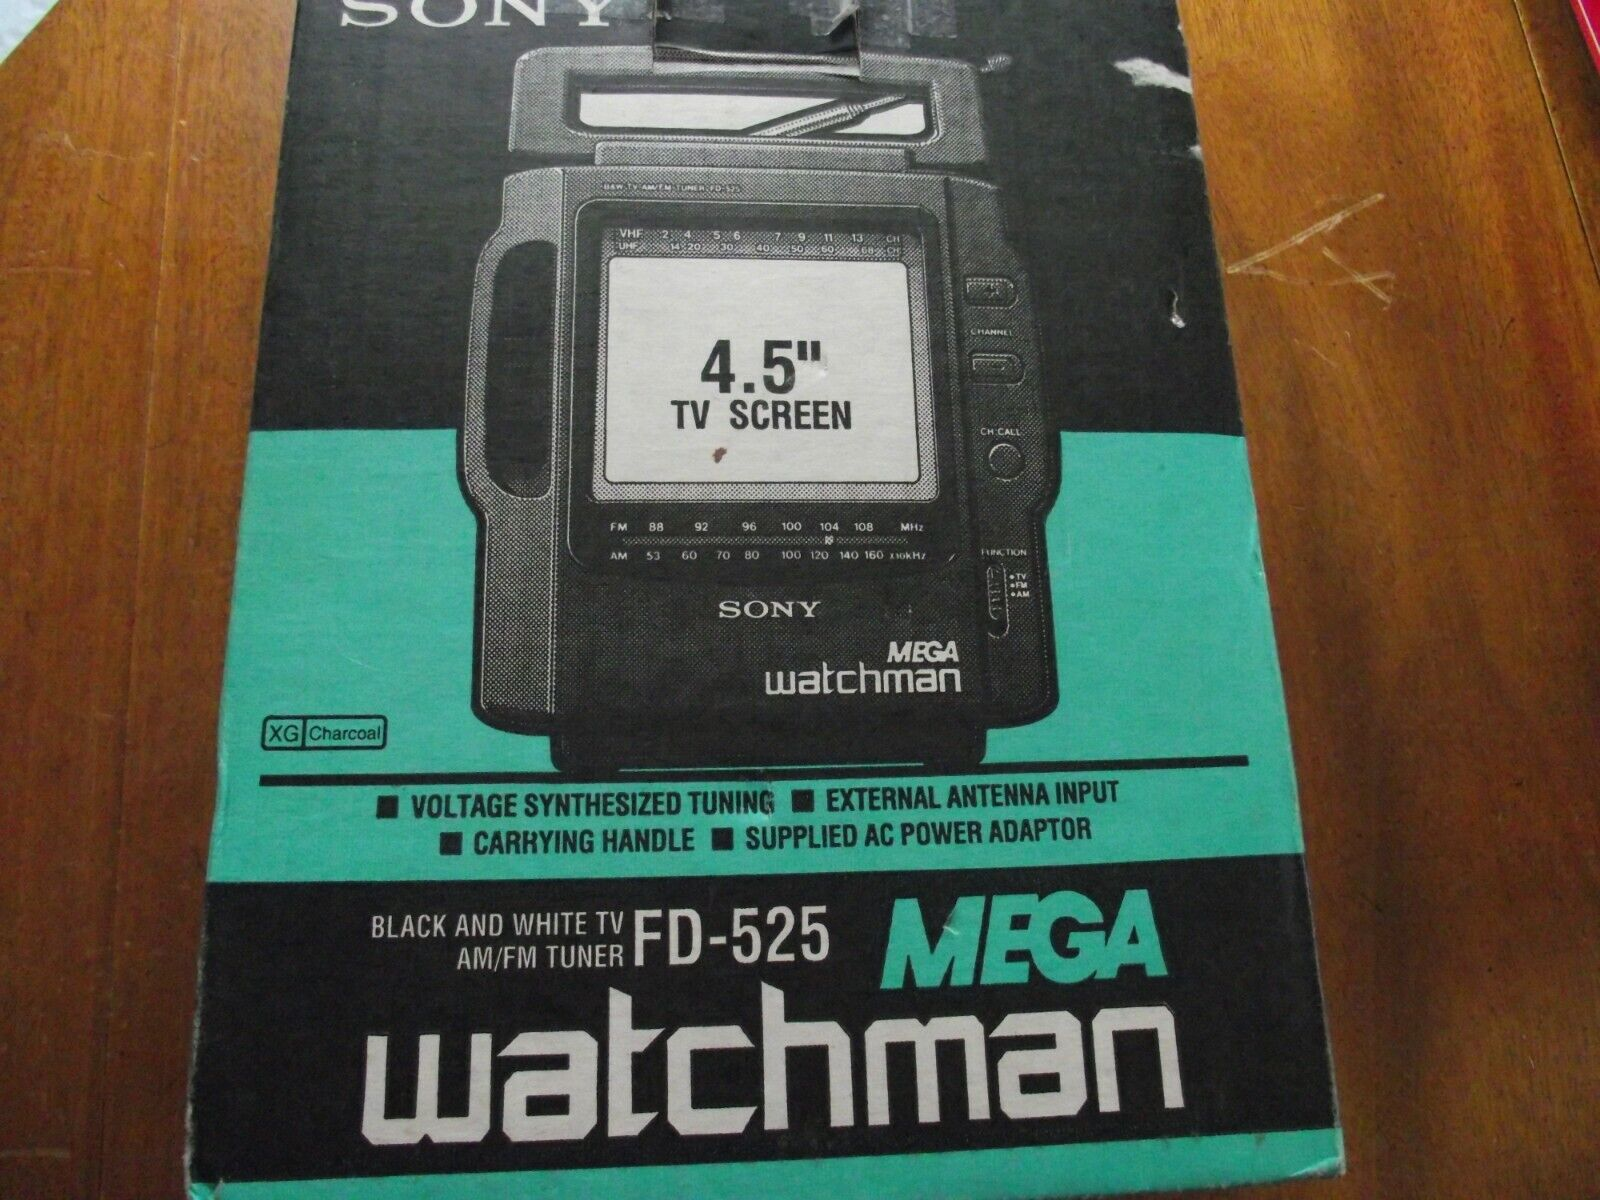 "Sony Mega Watchmen FD-525 4.5"" black/white TV with am/fm tuner in box"